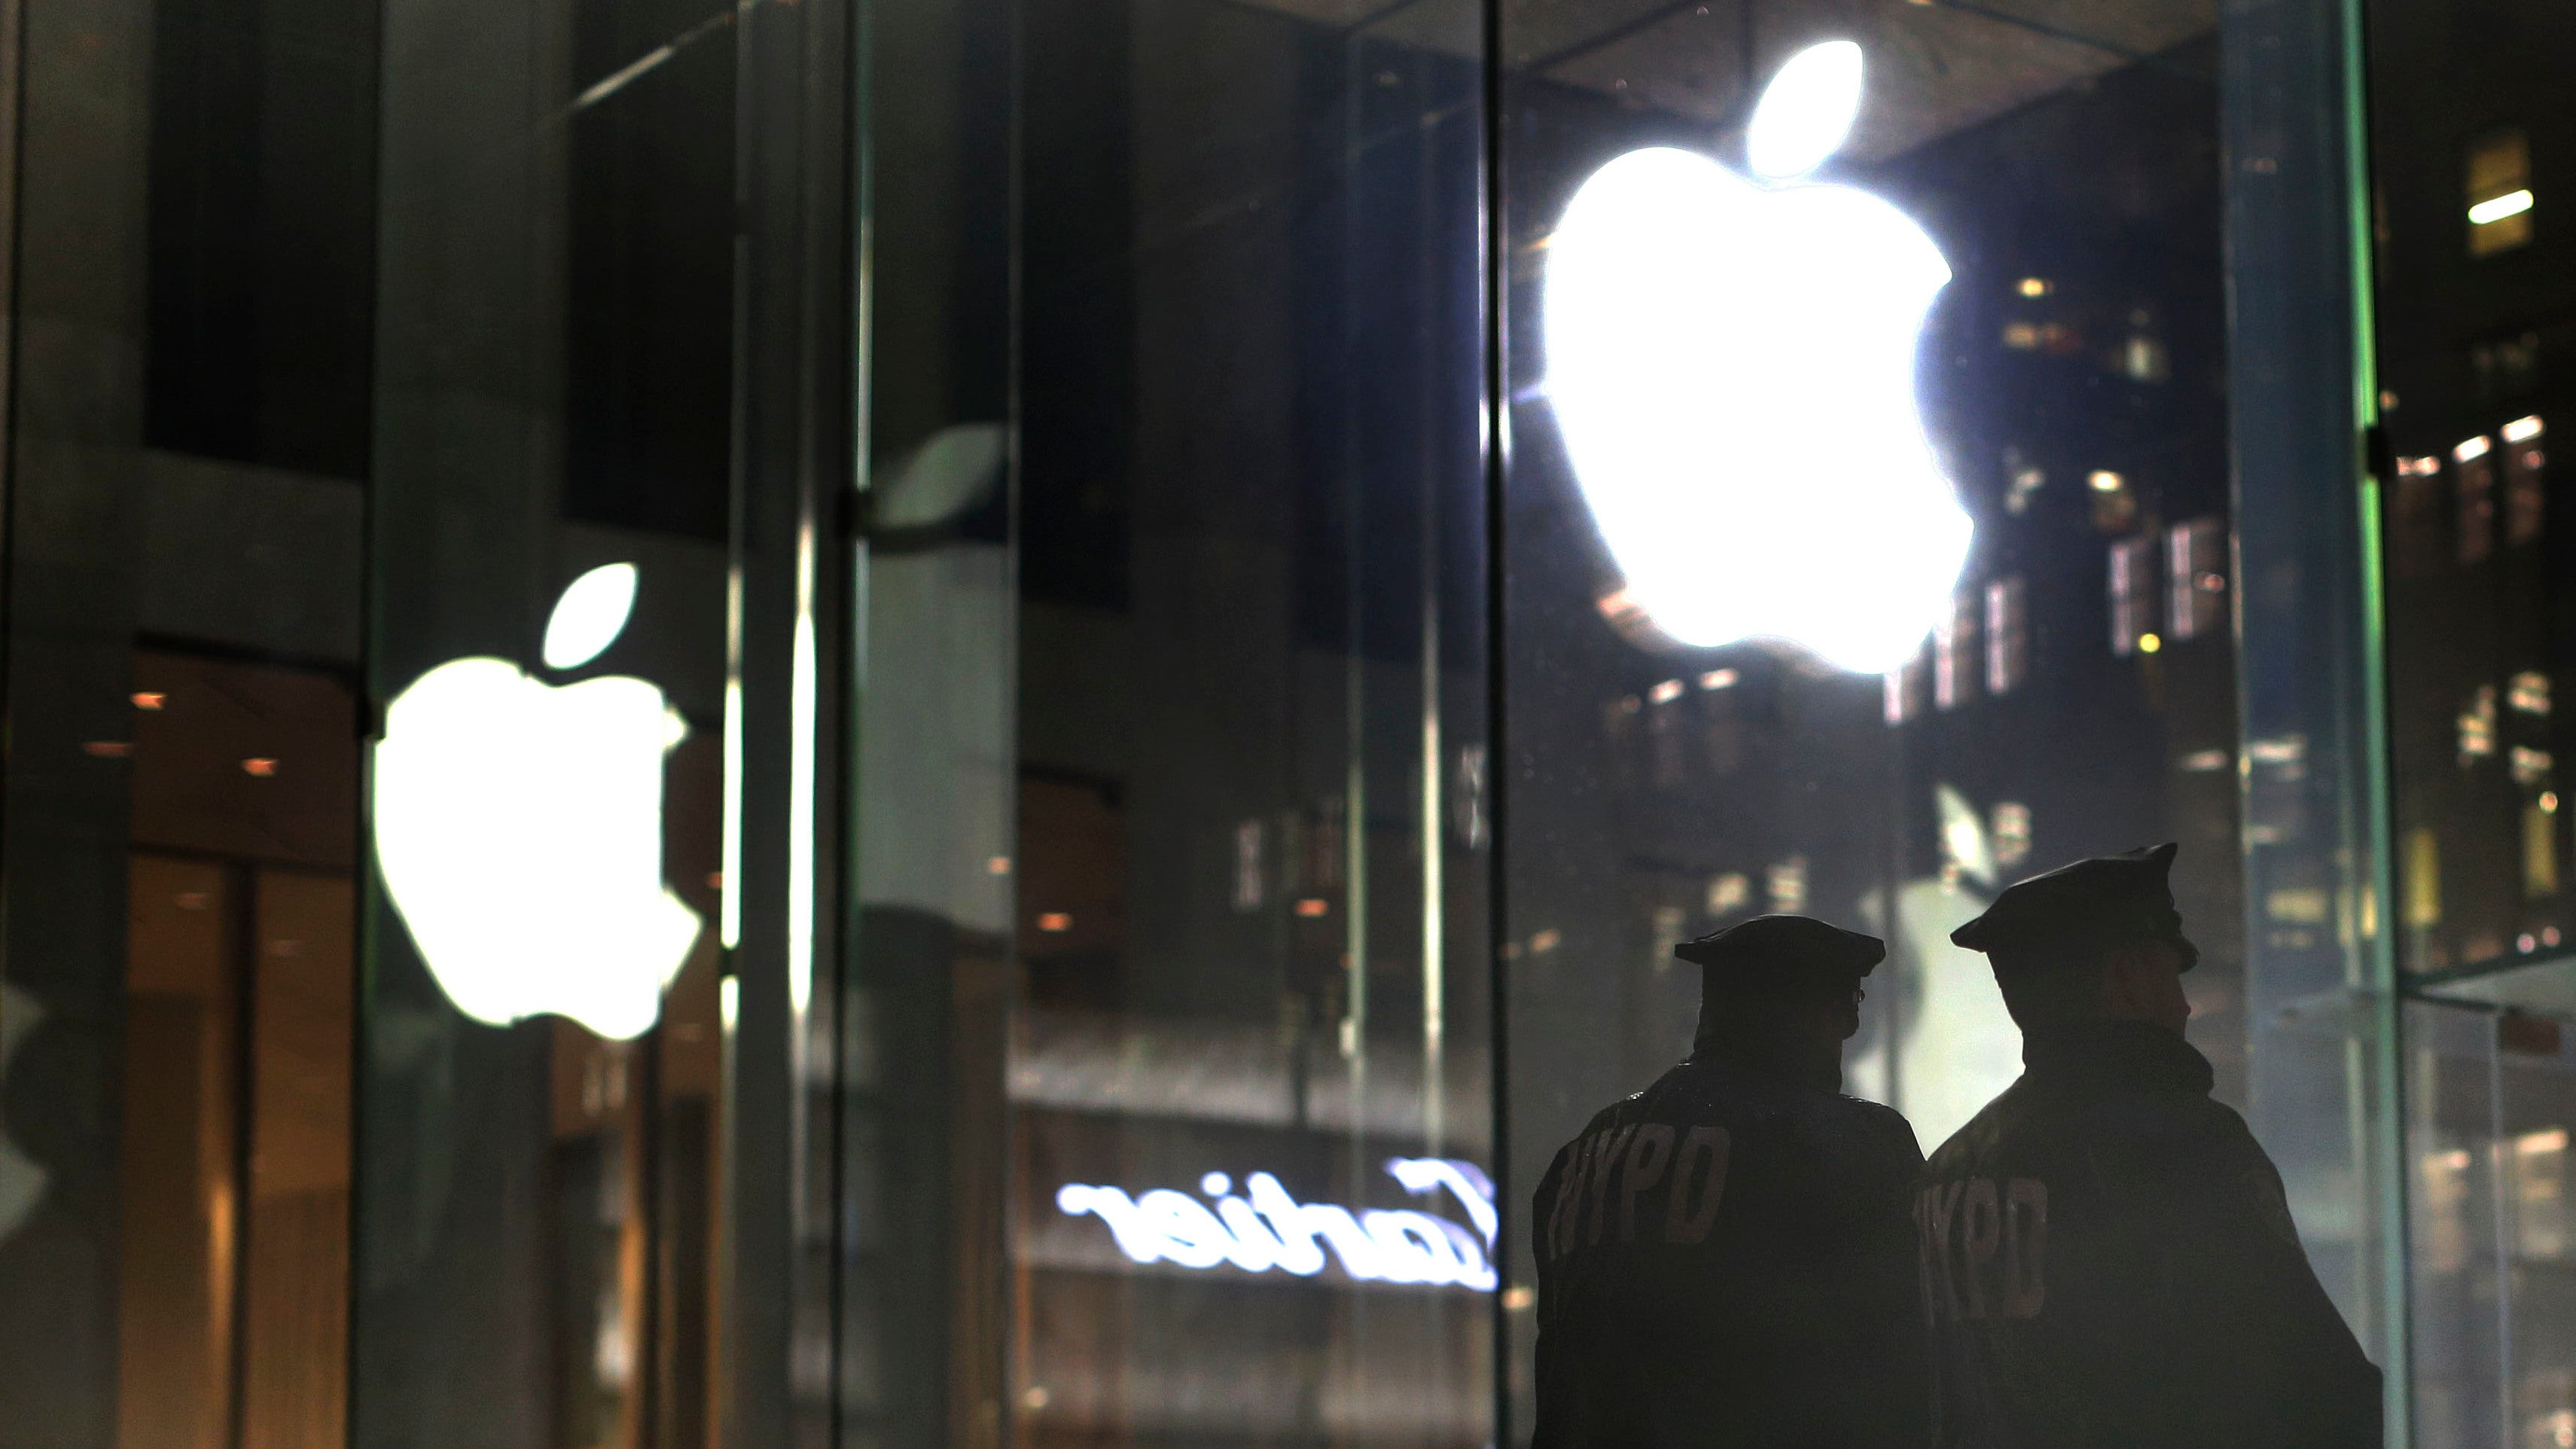 Cops Are Predictably Pissed About Apple's Plan To Turn Off USB Data Access On iPhones